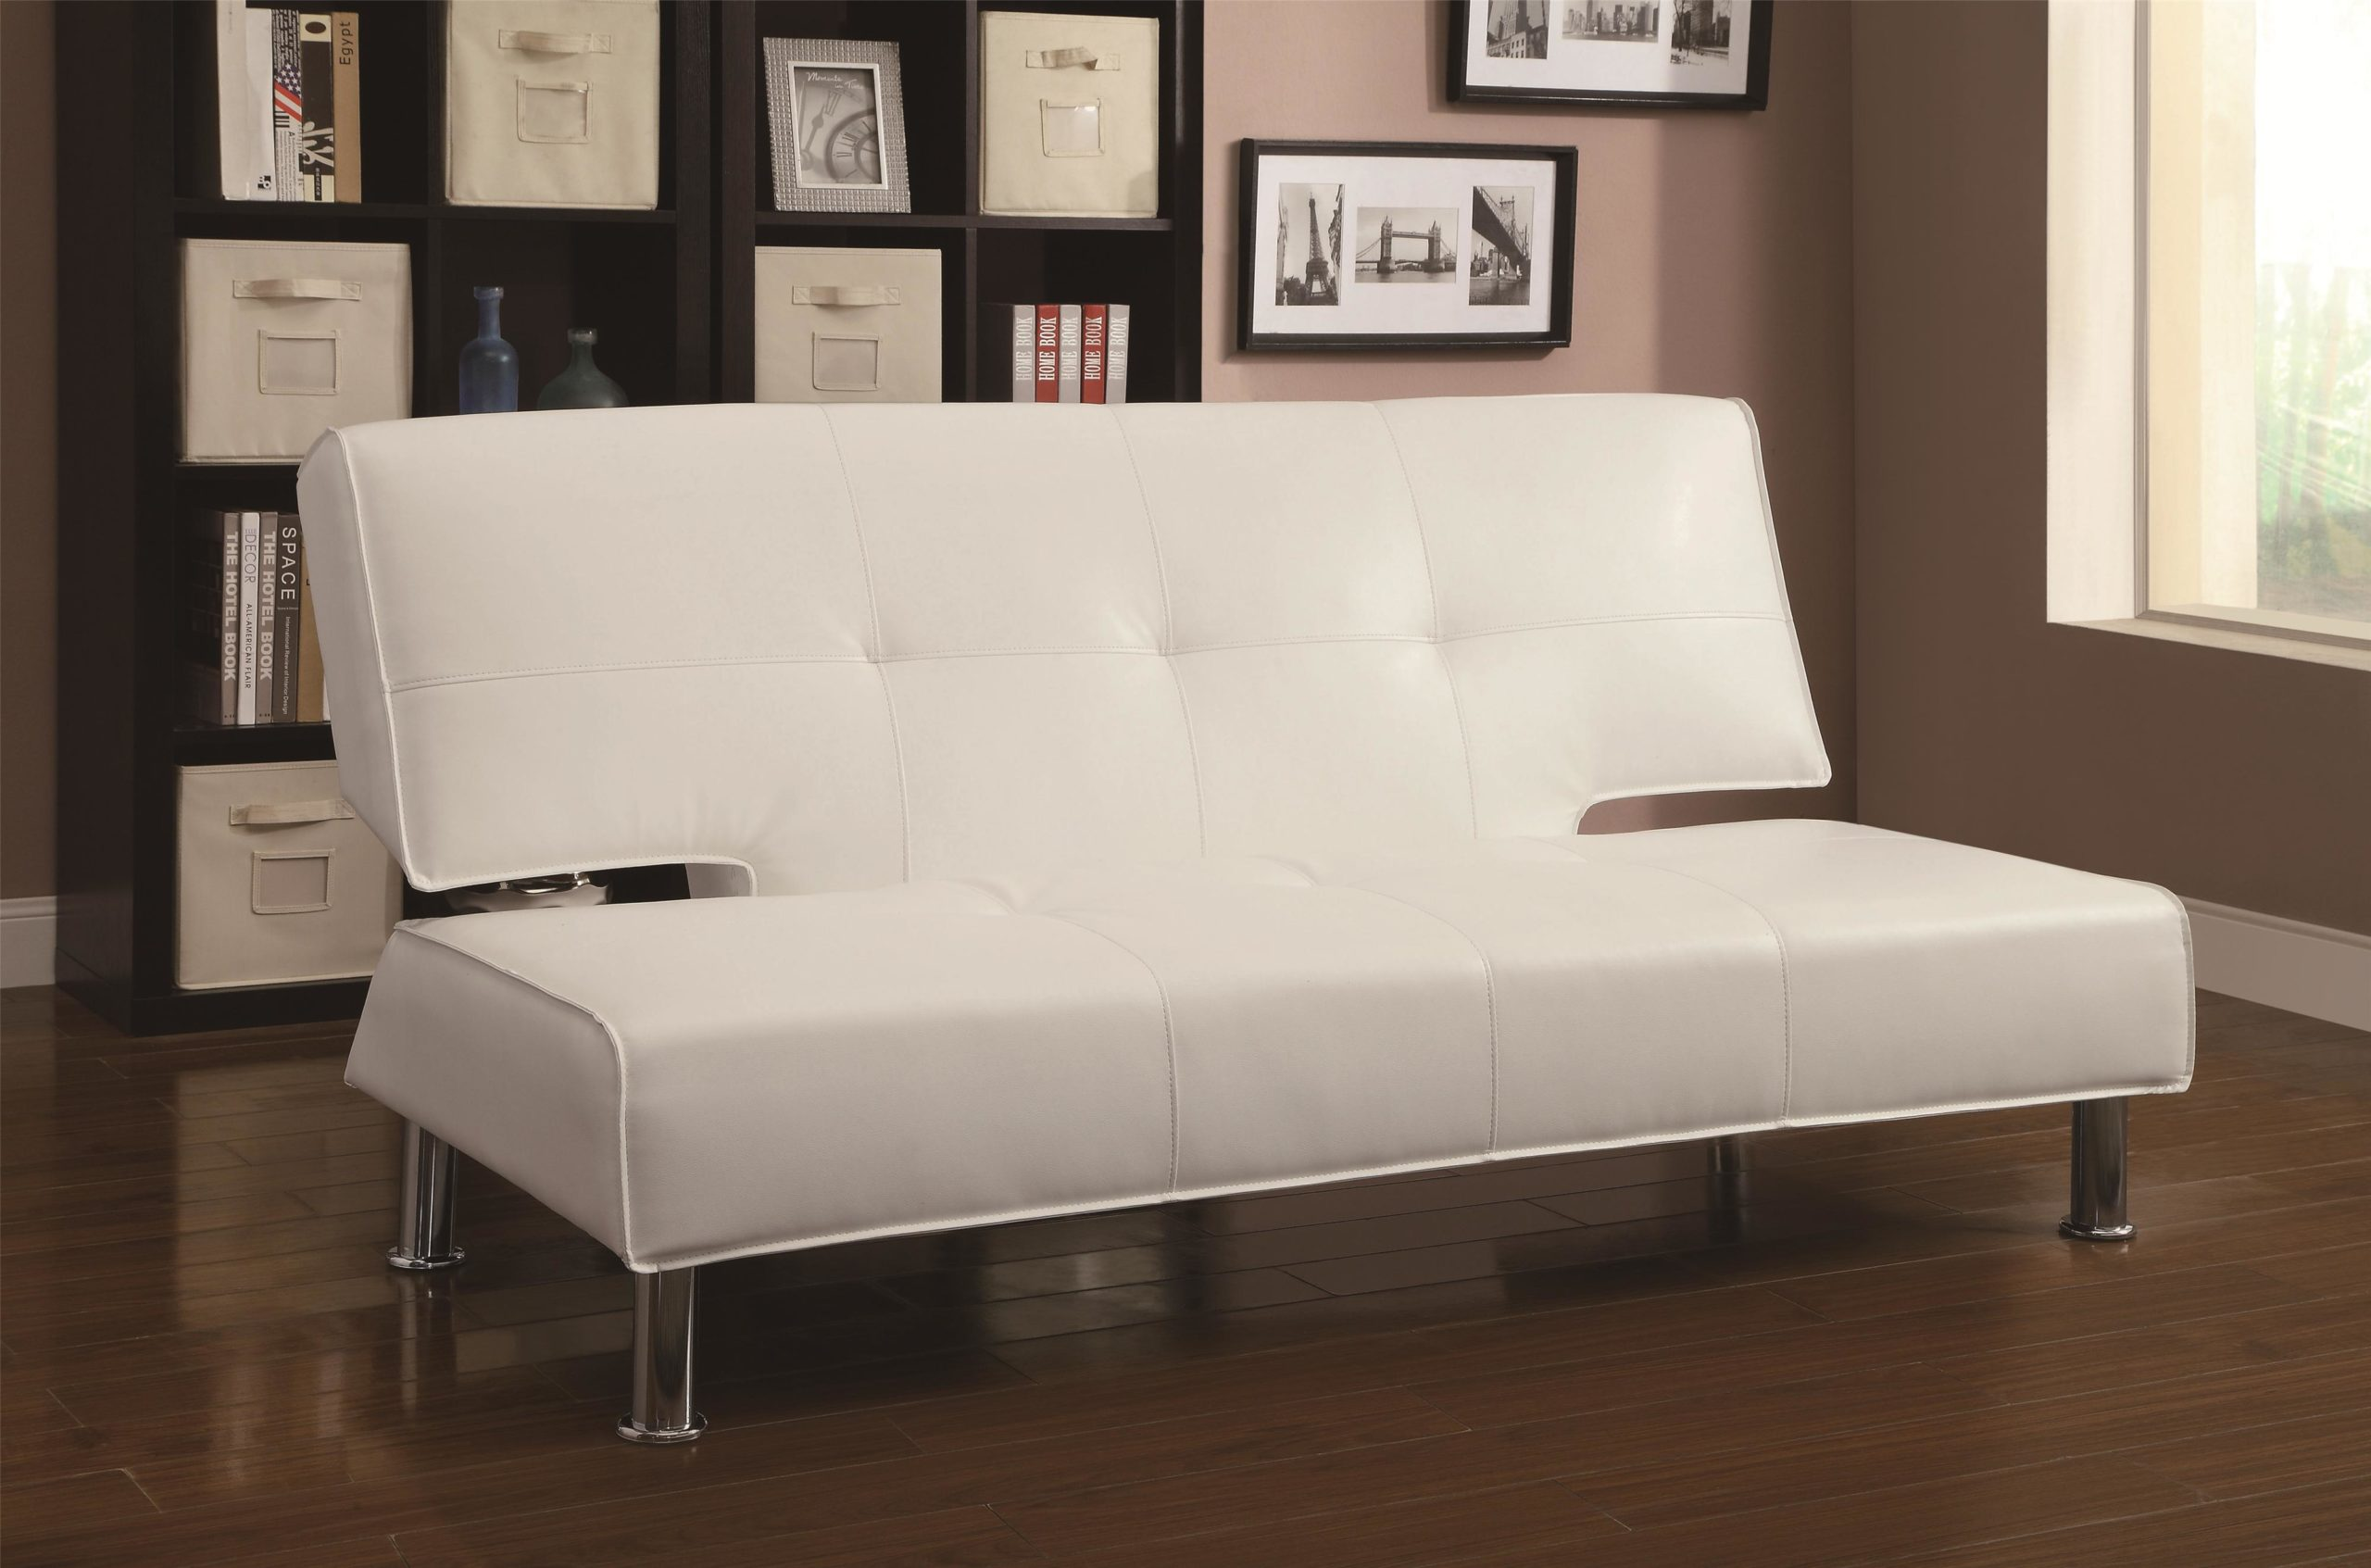 White Adjustable Armless Sofa Bed with chrome legs Up Position